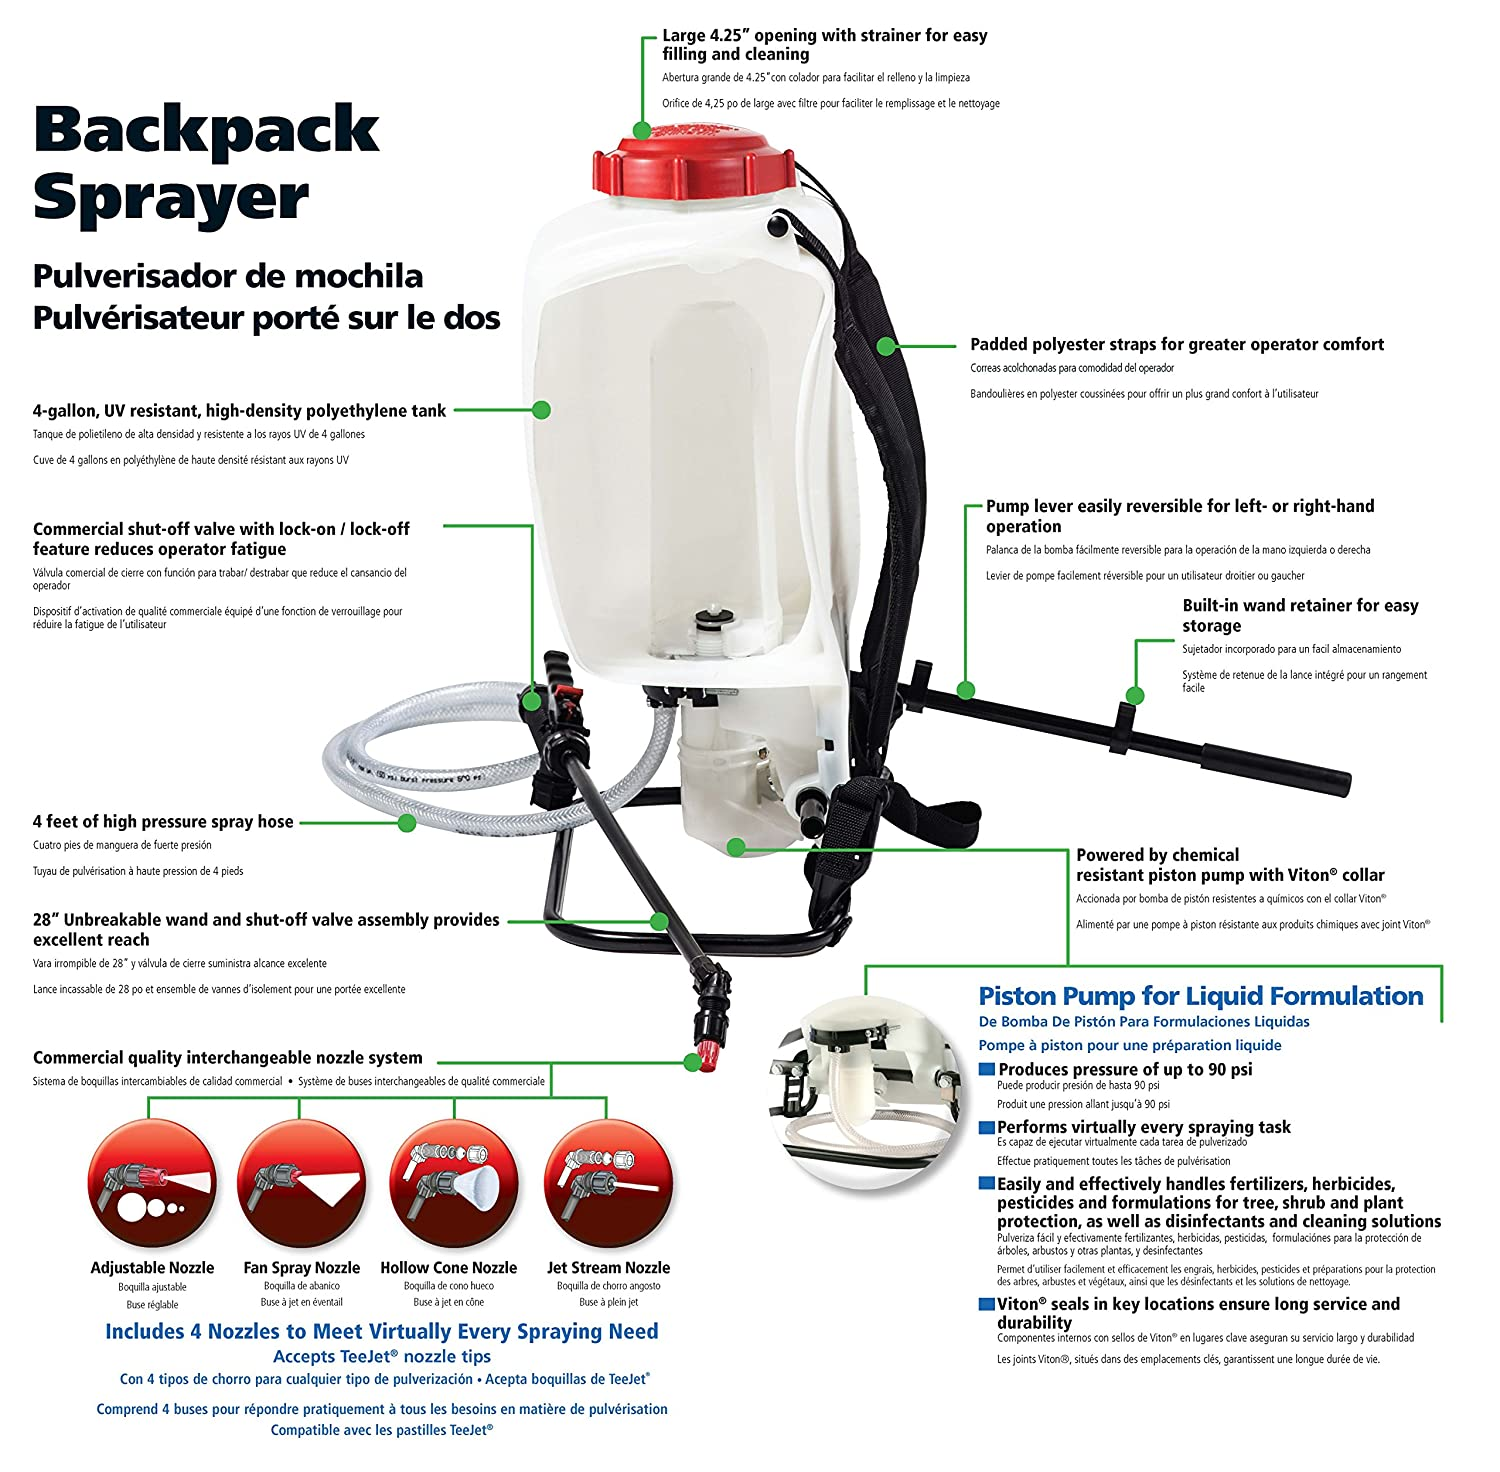 Amazon.com : SOLO 425 4-Gallon Professional Piston Backpack Sprayer, Wide Pressure Range up to 90 psi (Pack of 2) : Garden & Outdoor